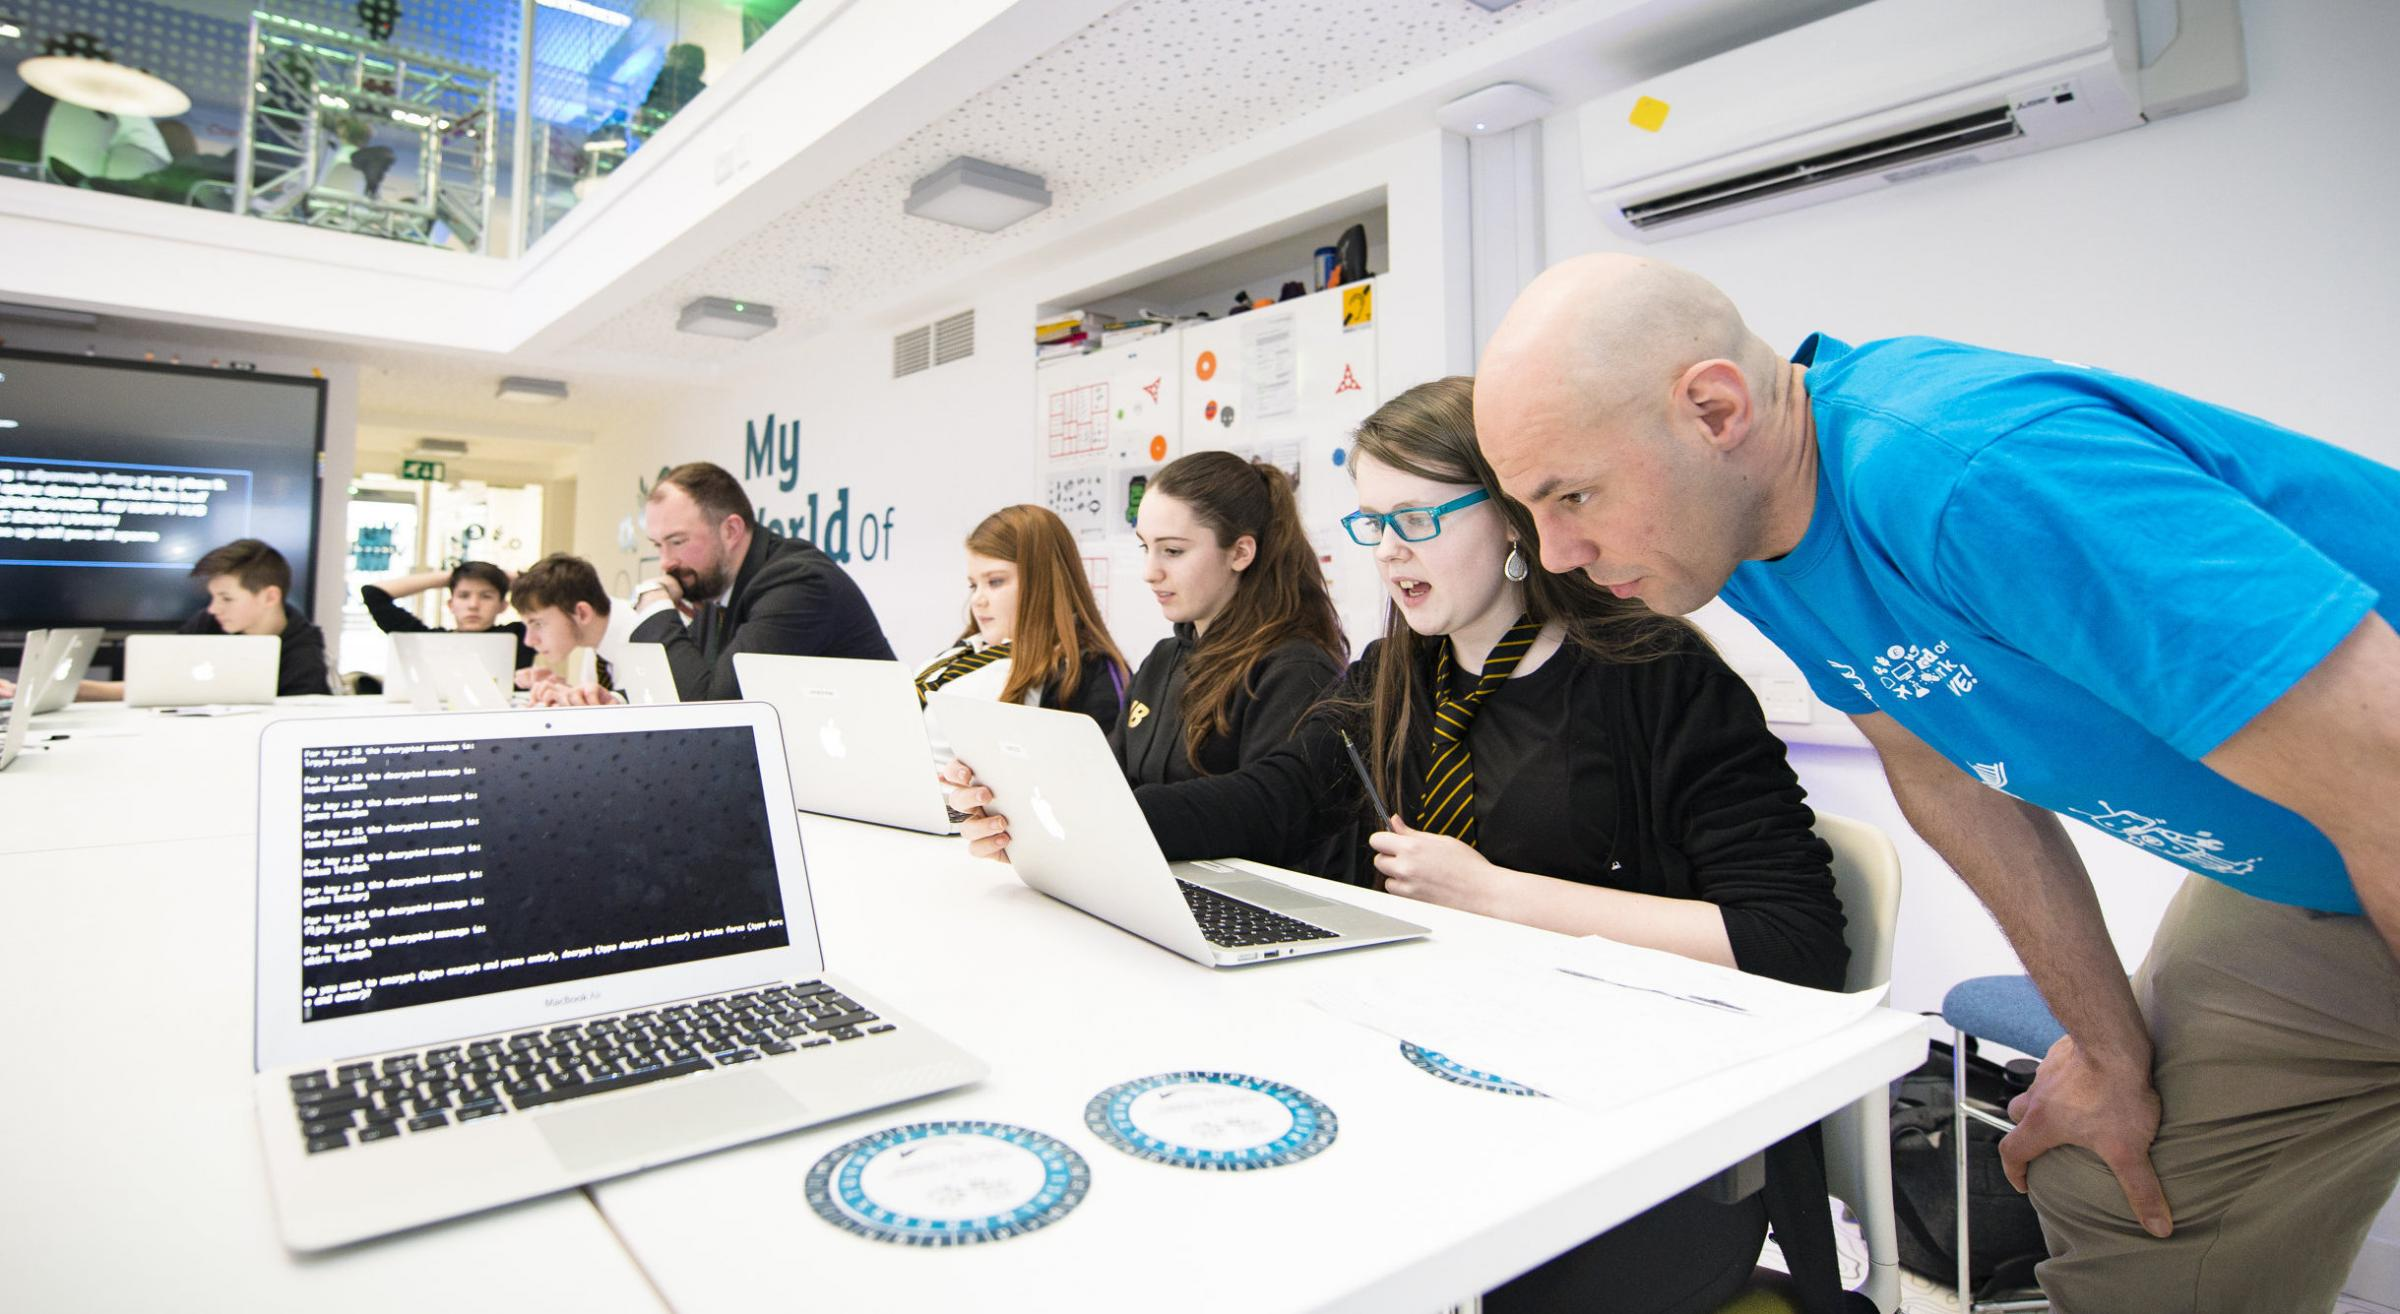 School students in Inverness learn new digital skills